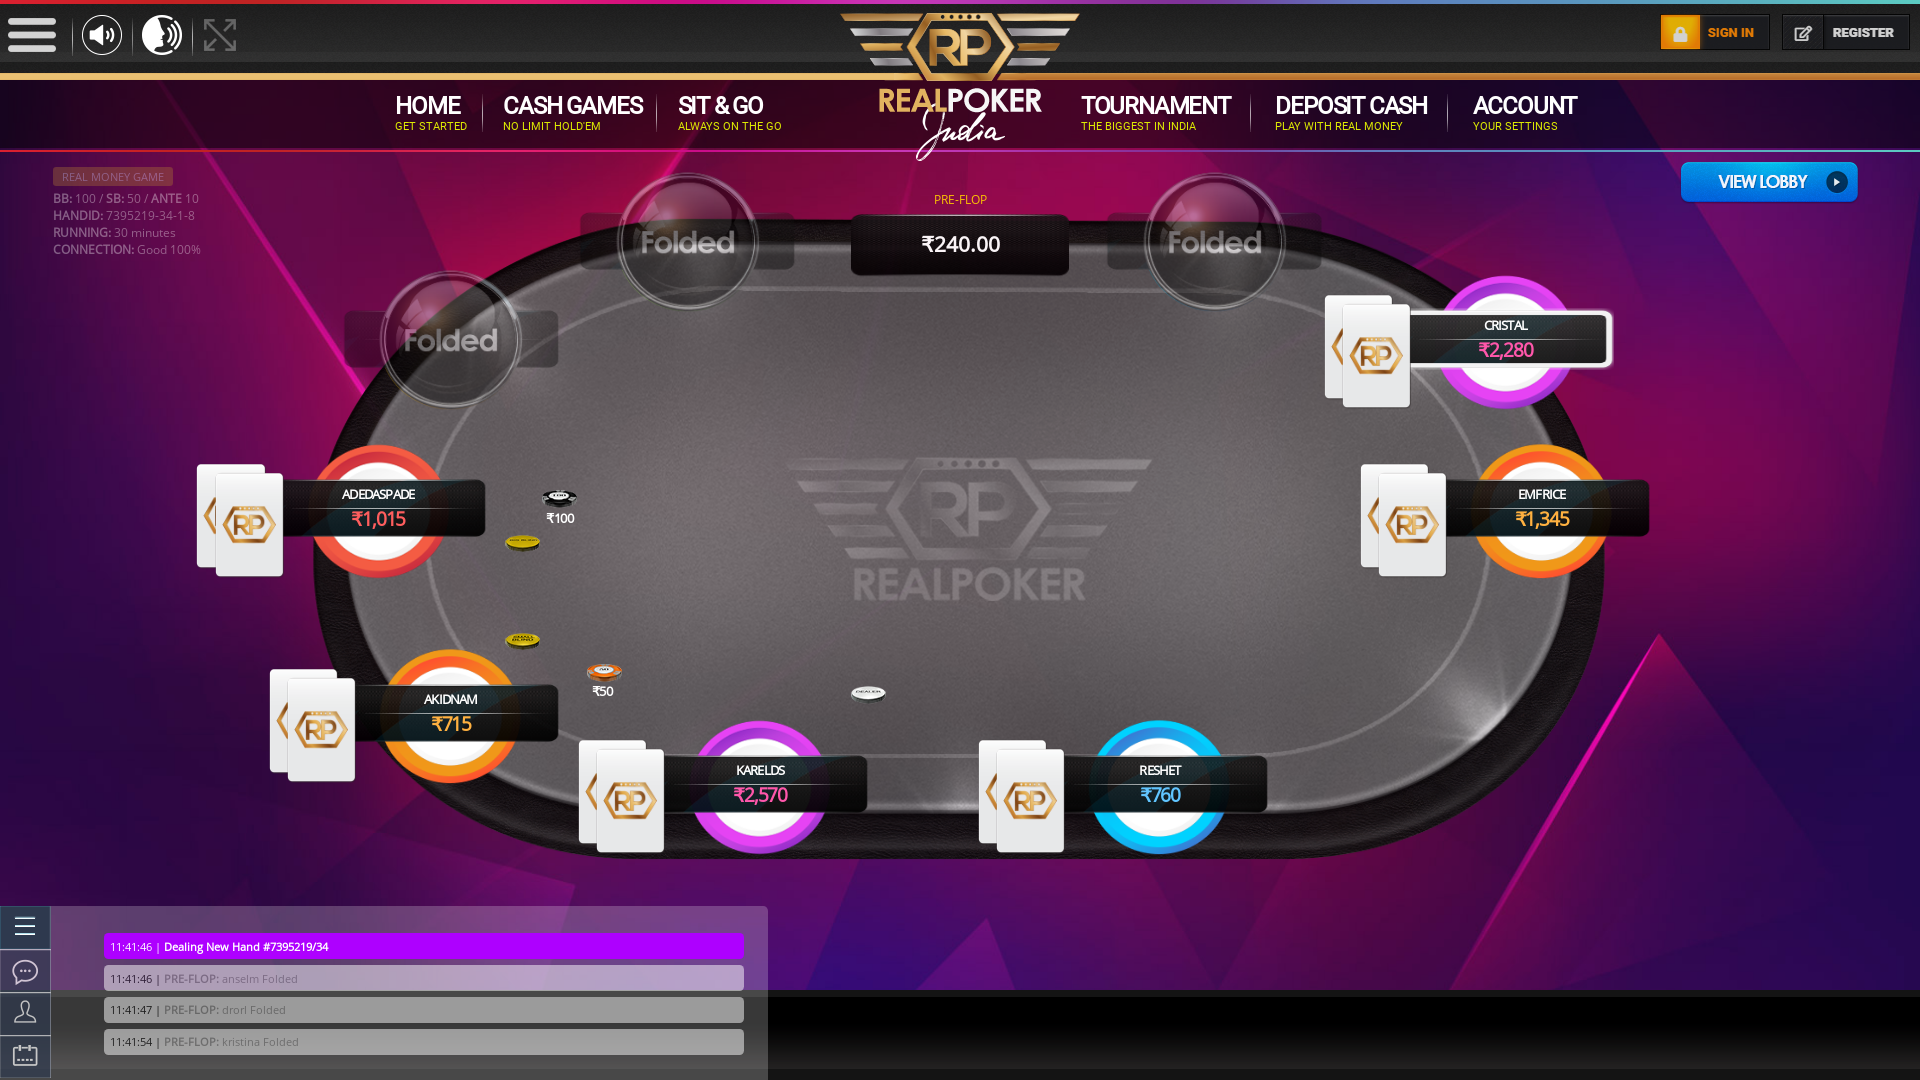 HSR Layout, Bangalore poker table on a 10 player table in the 30th minute of the game